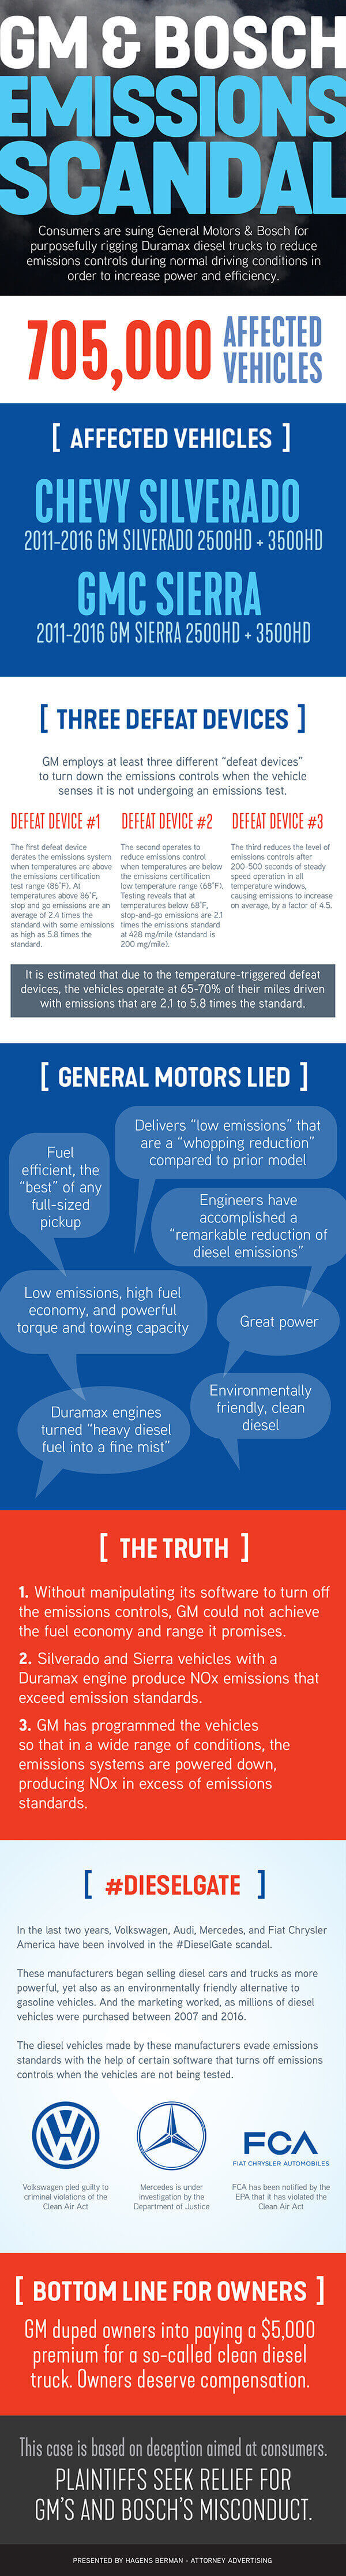 Duramax Diesel Class Action Infographic